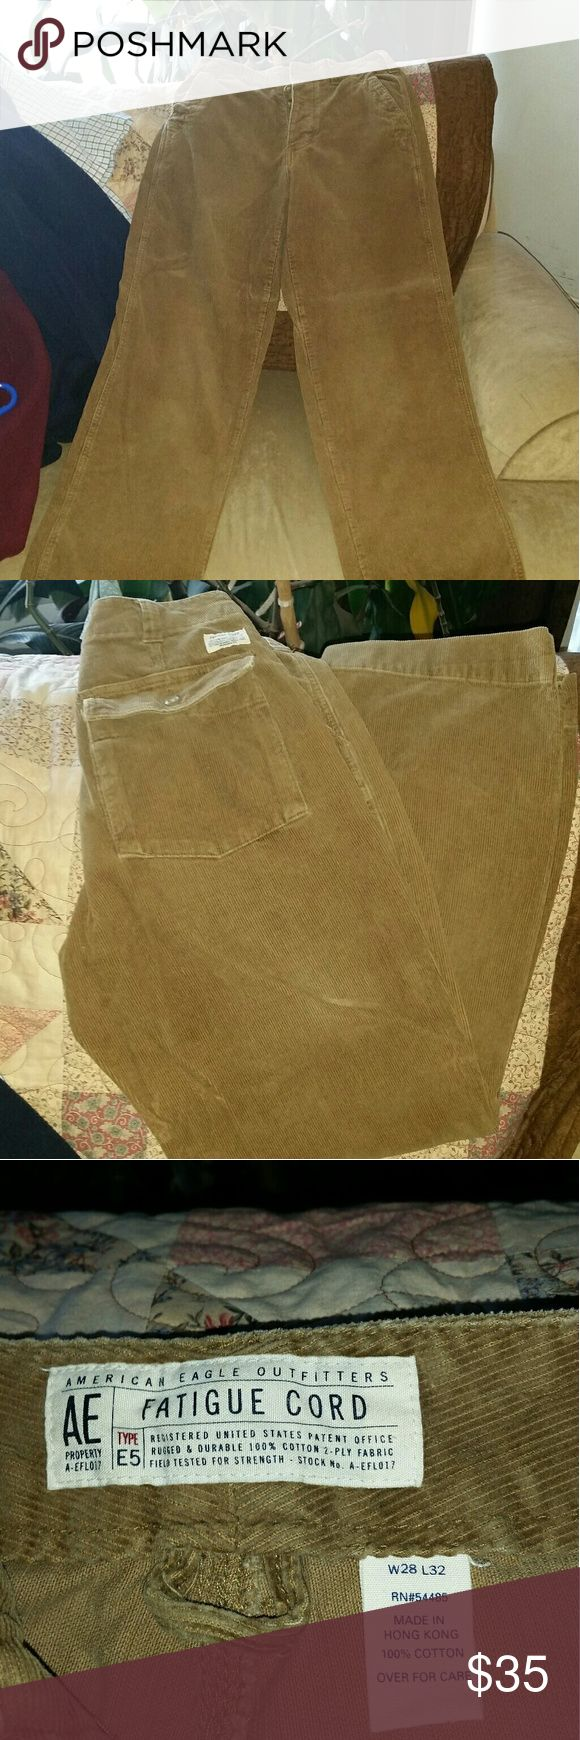 American Eagle Outfitters Men's Corduroy Pants Great condition brown Corduroy pants. American Eagle Outfitters Pants Corduroy